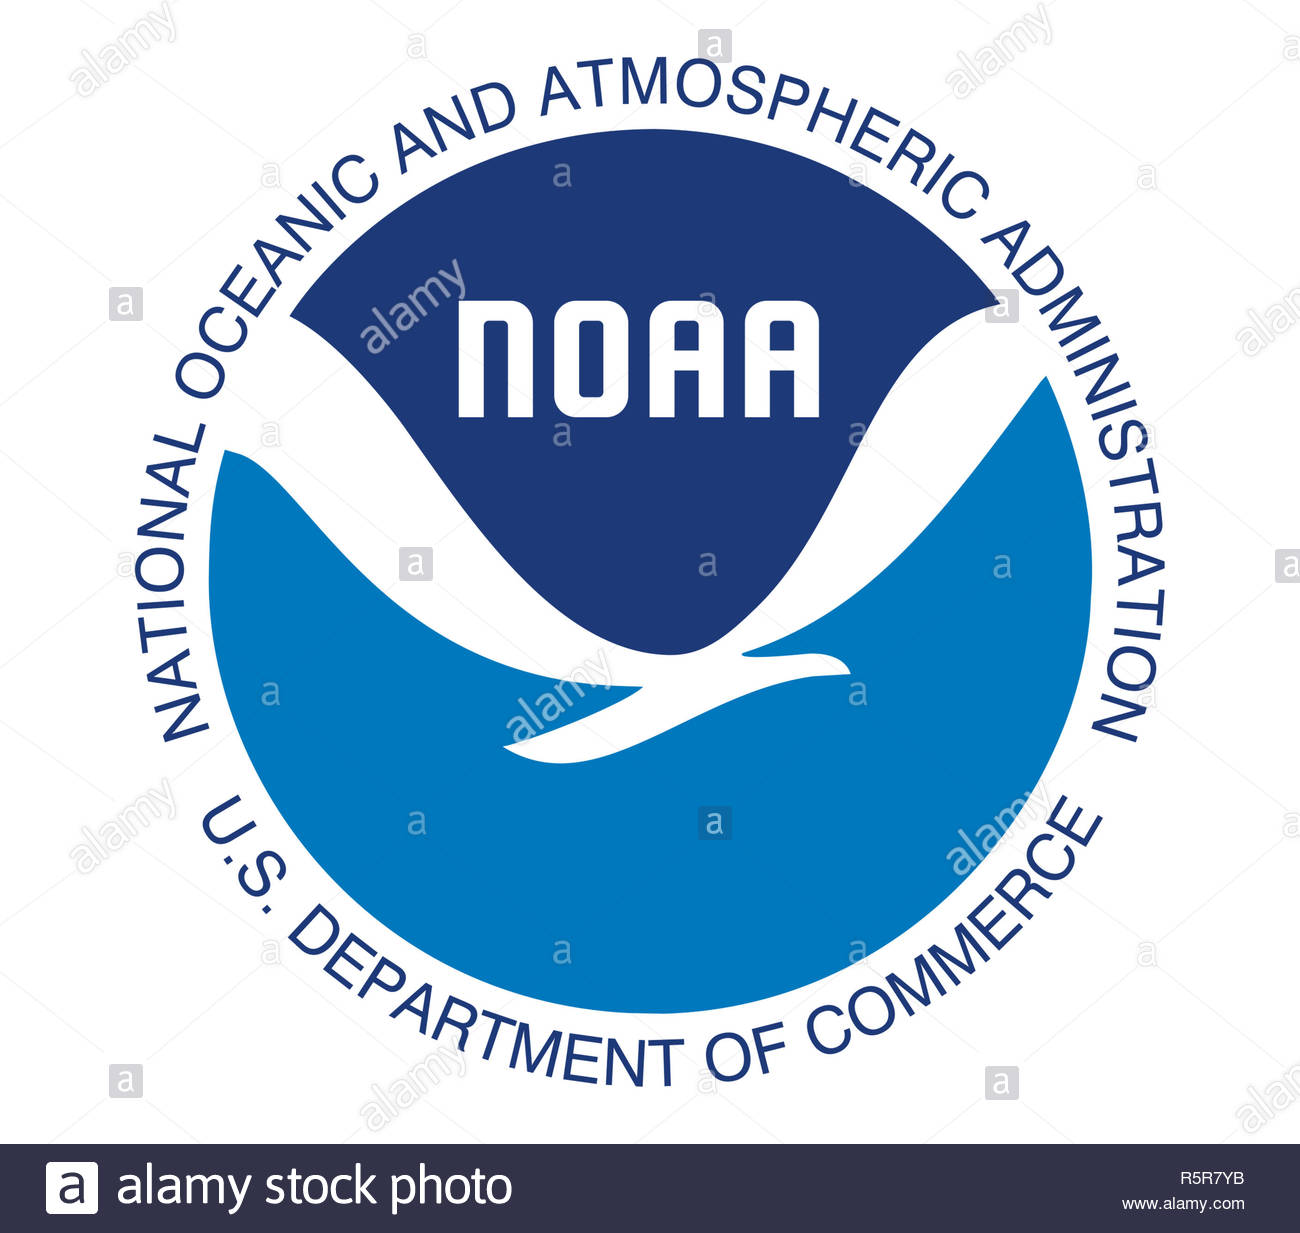 National Oceanic and Atmospheric Administration logo sign - Stock Image